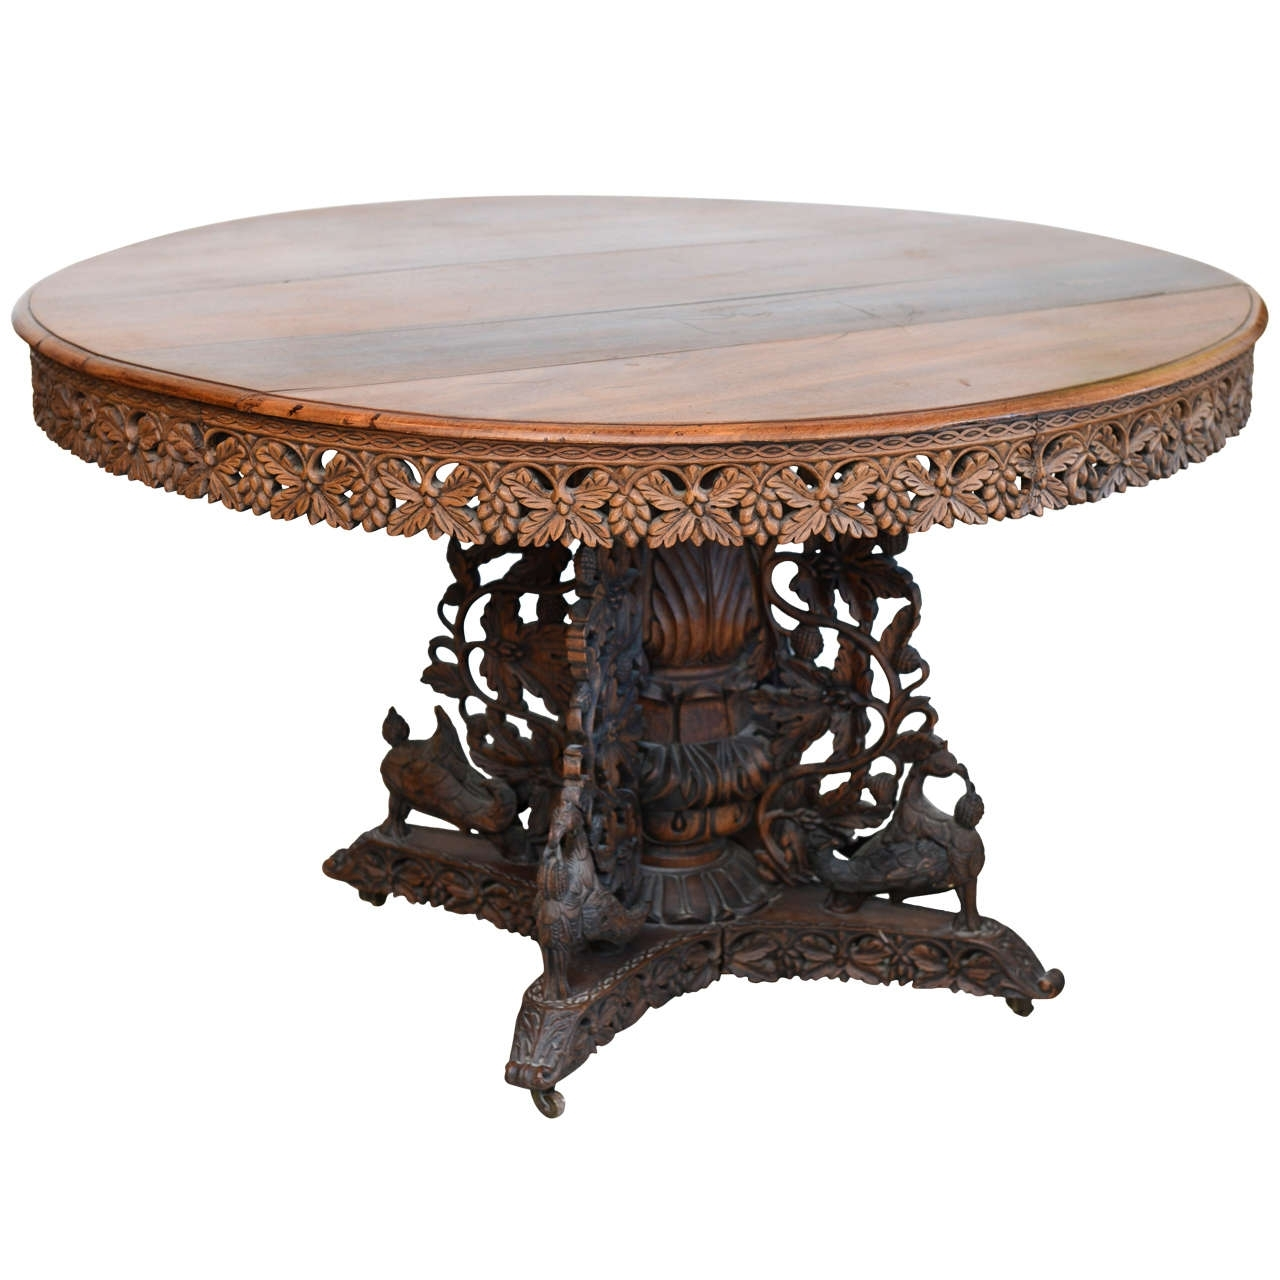 5. Anglo Indian Teak And Padouk Center Dining Table For Sale with Well-liked Indian Dining Room Furniture